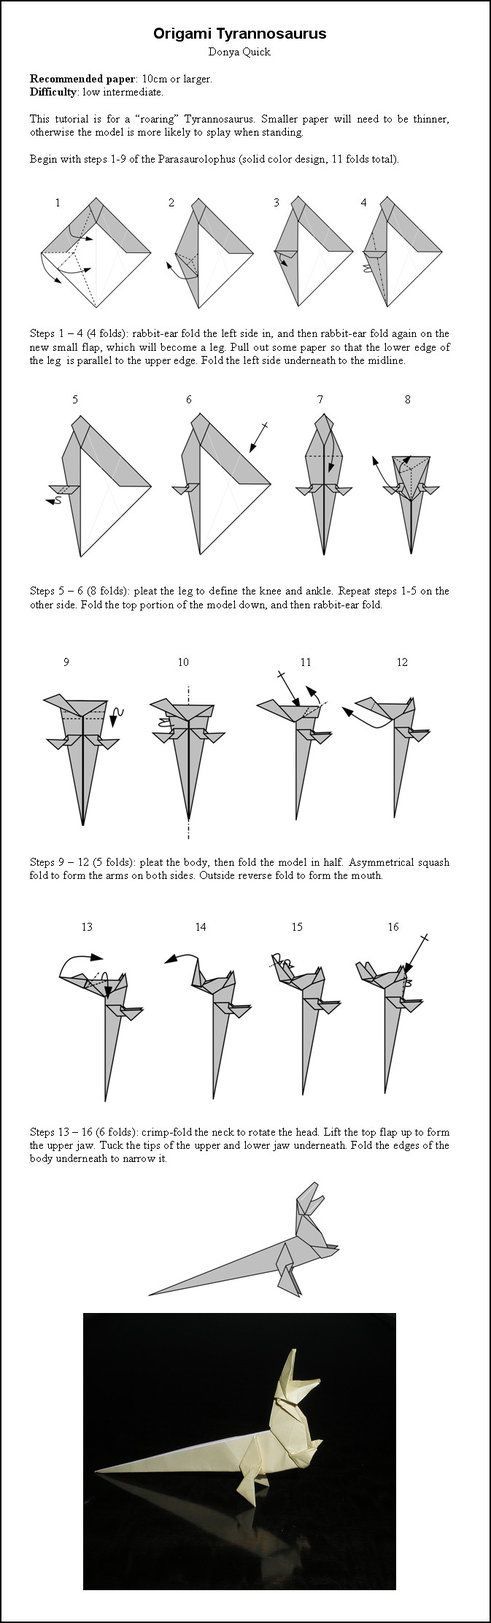 Origami T Rex Instructions By Donyaquick Craft Pinterest Dinosaurs Origamiorigami Diagramsorigami Dinosaur Curious Little Kid